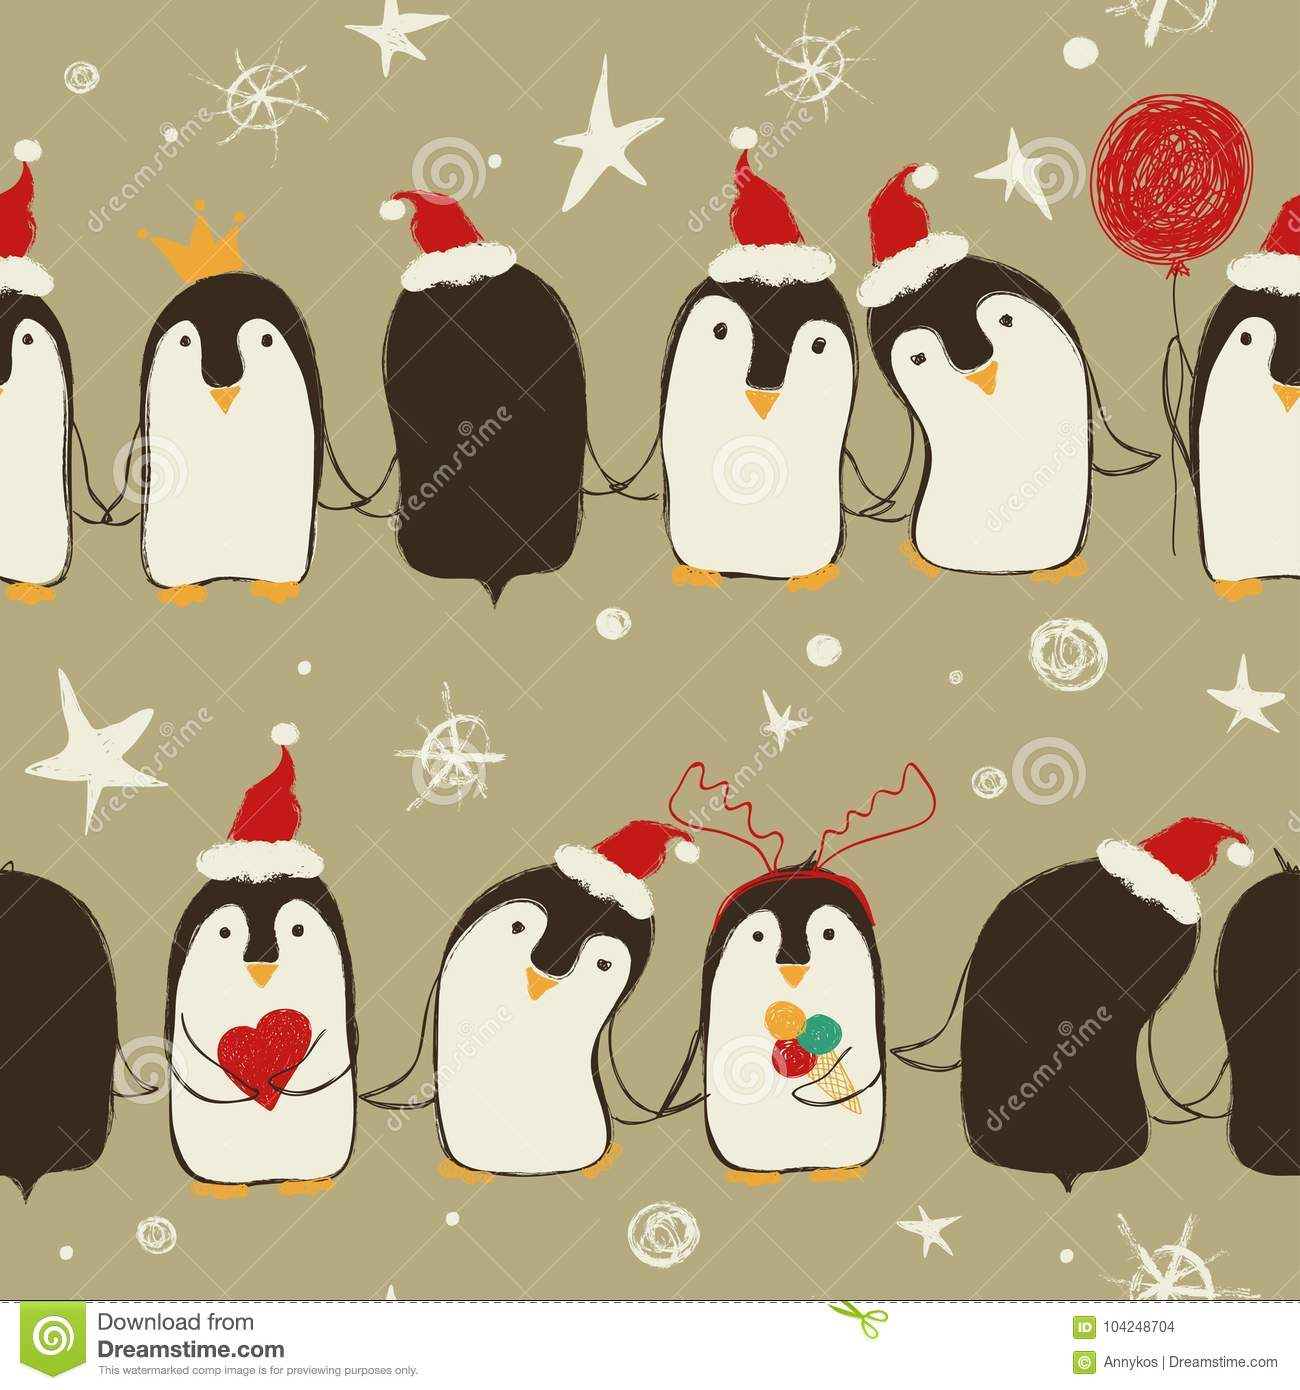 Christmas Seamless Pattern Of Penguins.